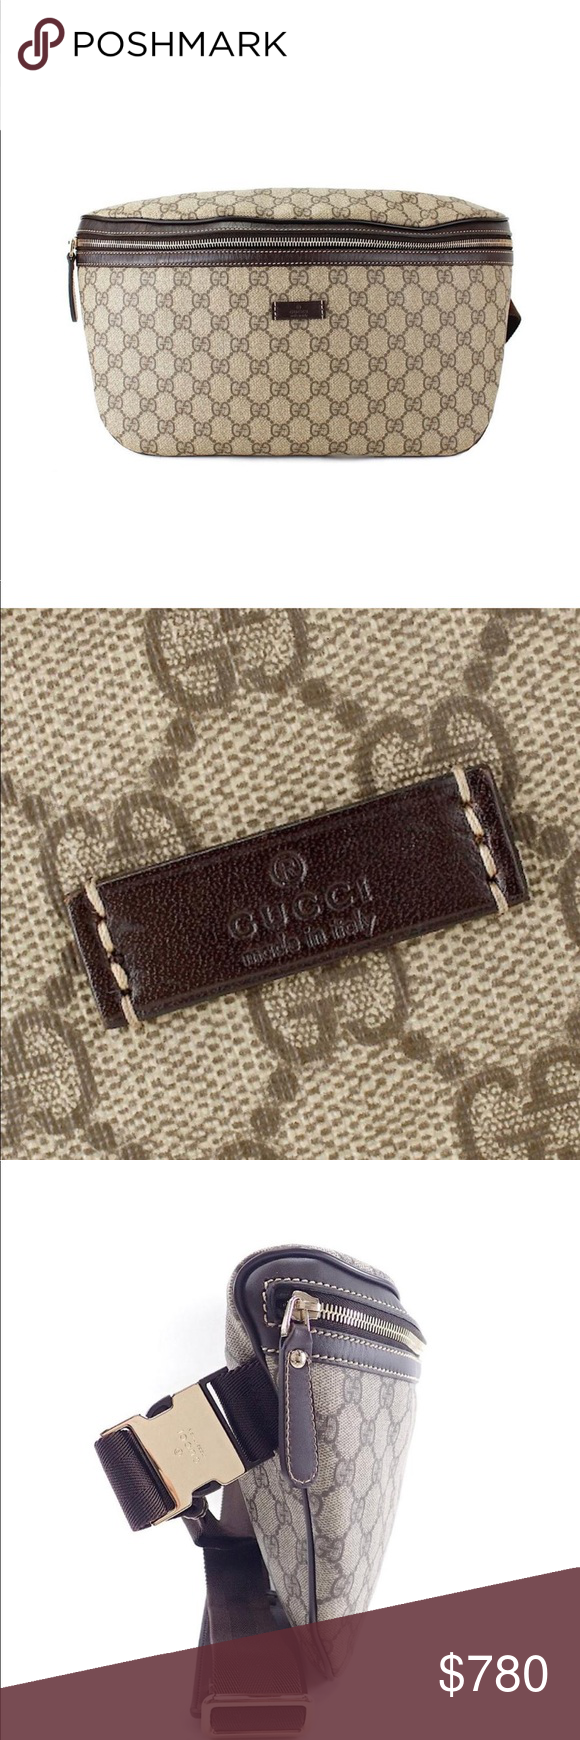 733d1f25f60df Authentic Gucci Monogram GG Belt Bag Waist Pouch Authentic Gucci Monogram  GG Belt Bag Large Sized Version Made in Italy Monogram GG Canvas